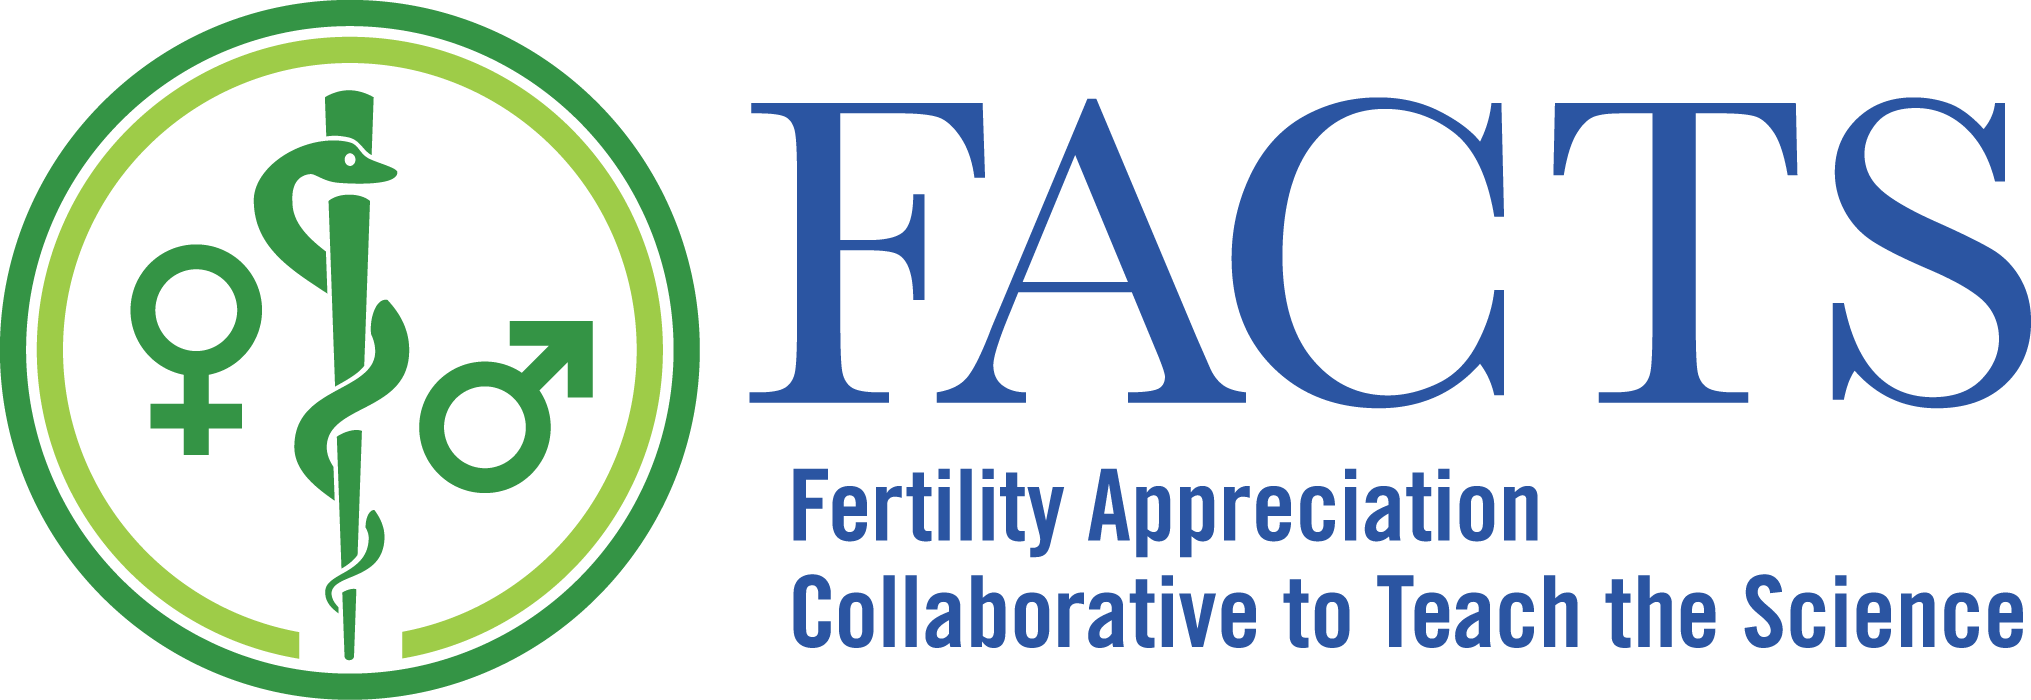 FACTS fertility